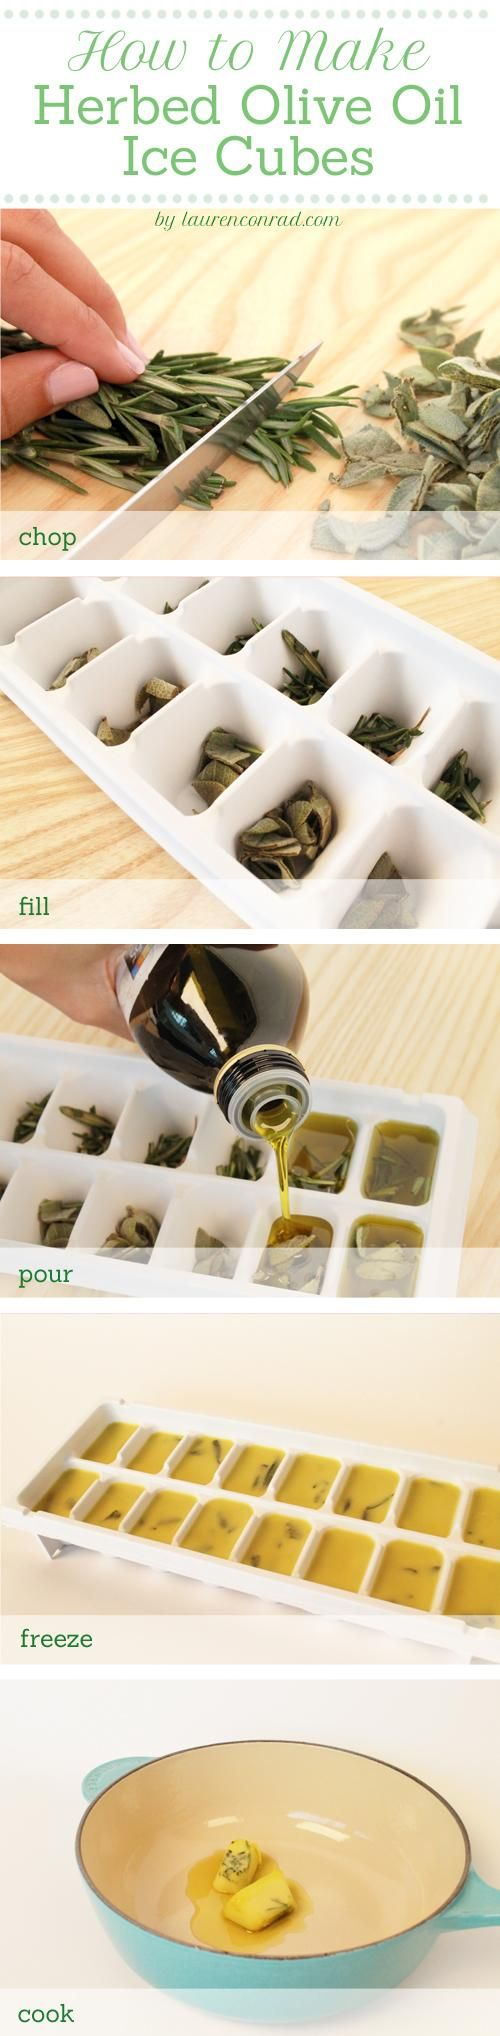 Read on to find out how you can make delicious and convenient herb-infused OLIVE OIL ice cubes. #OliveOil #DIY